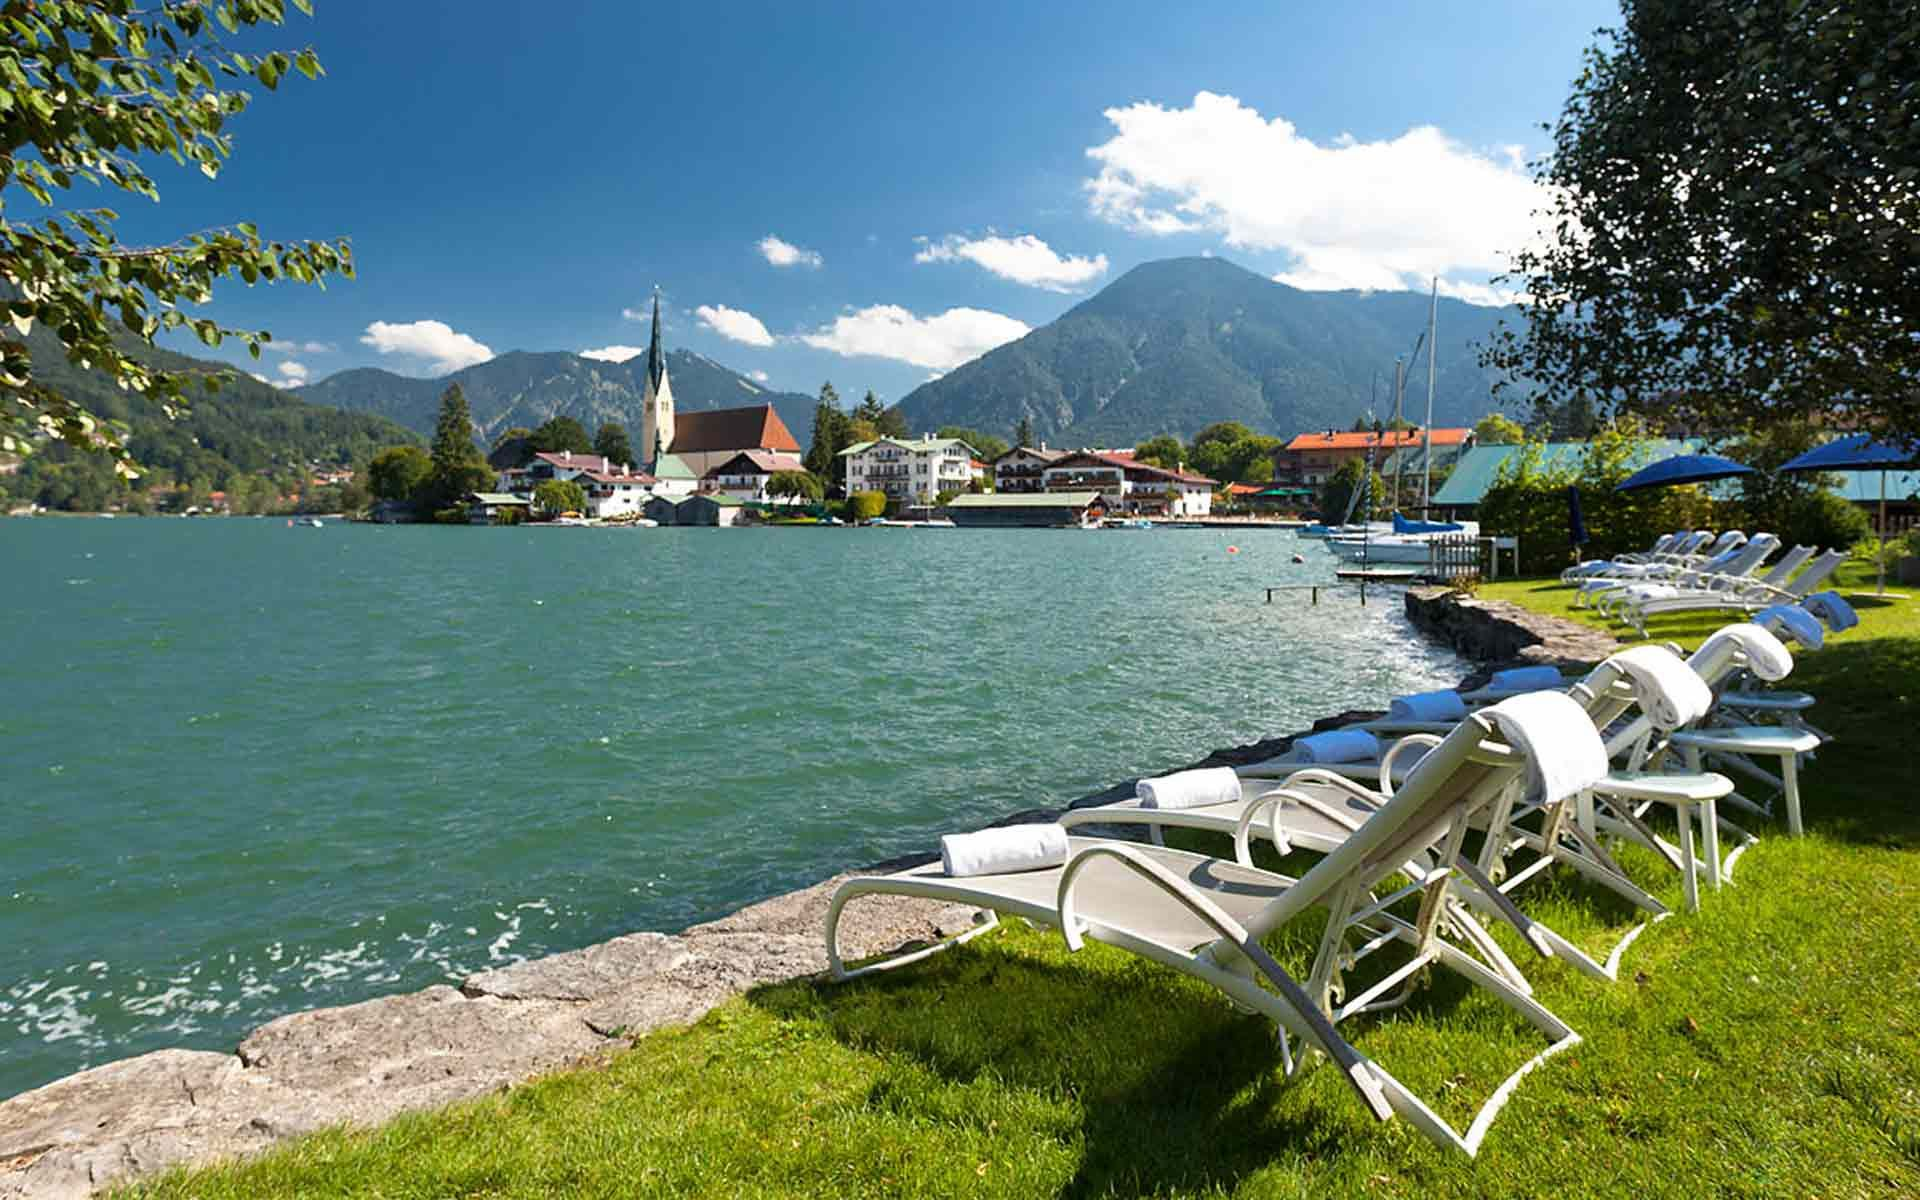 Hotel In Rottach Egern Althoff Seehotel Uberfahrt Luxury Vacation Spots Vacation Spots Luxury Vacation